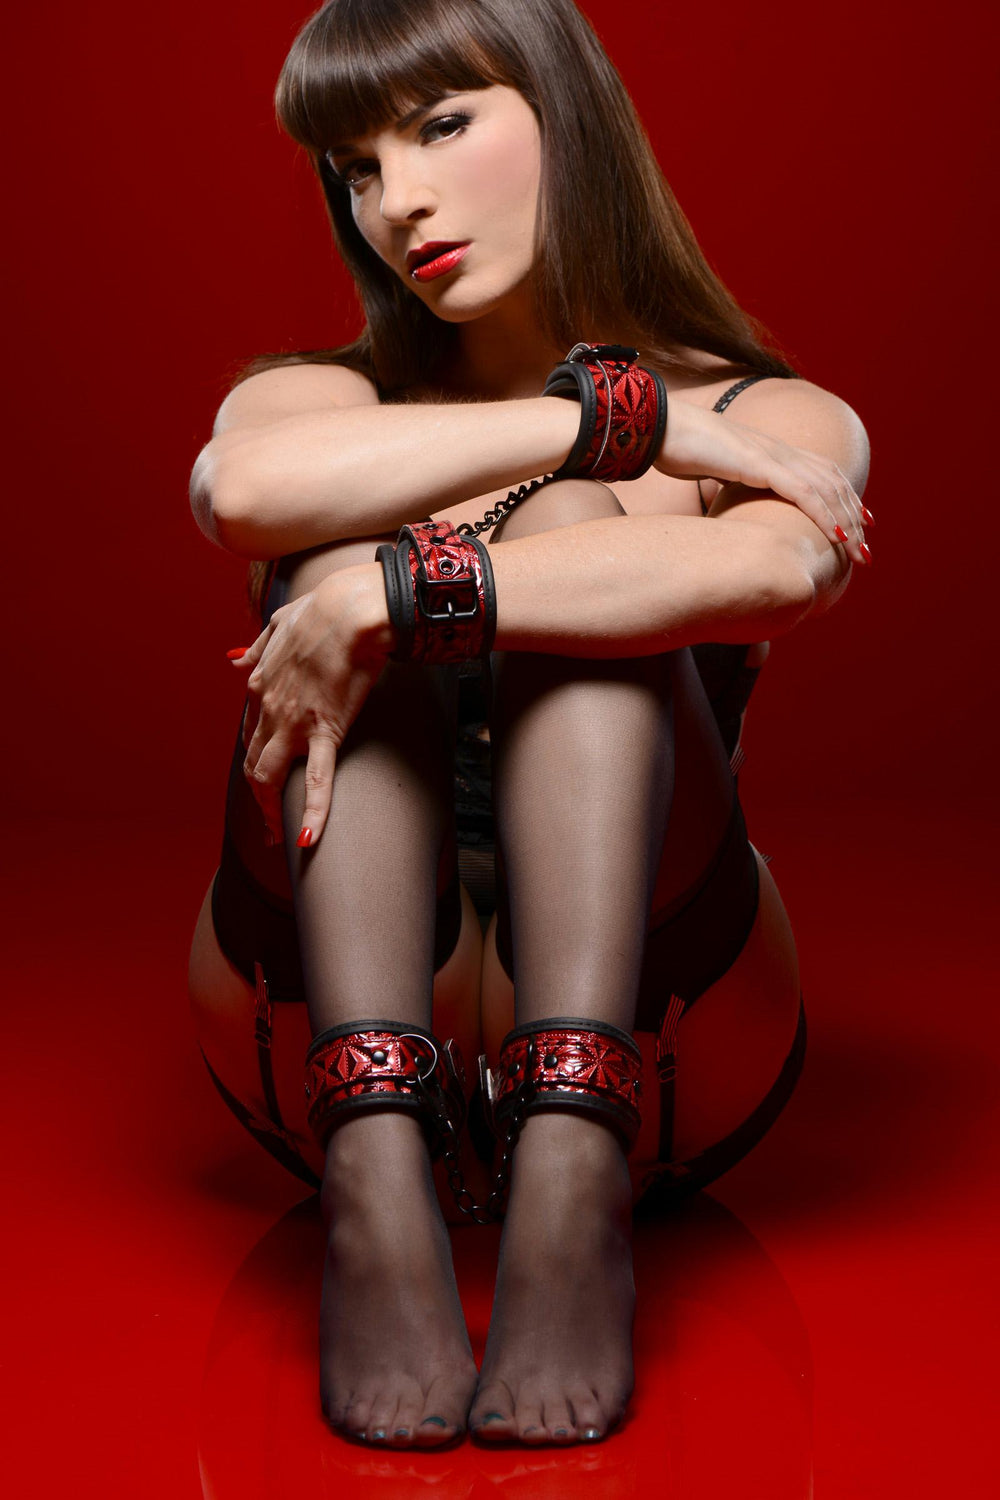 Crimson Tied Wrist and Ankle Bondage Kit - Fun and Kinky Sex Toys